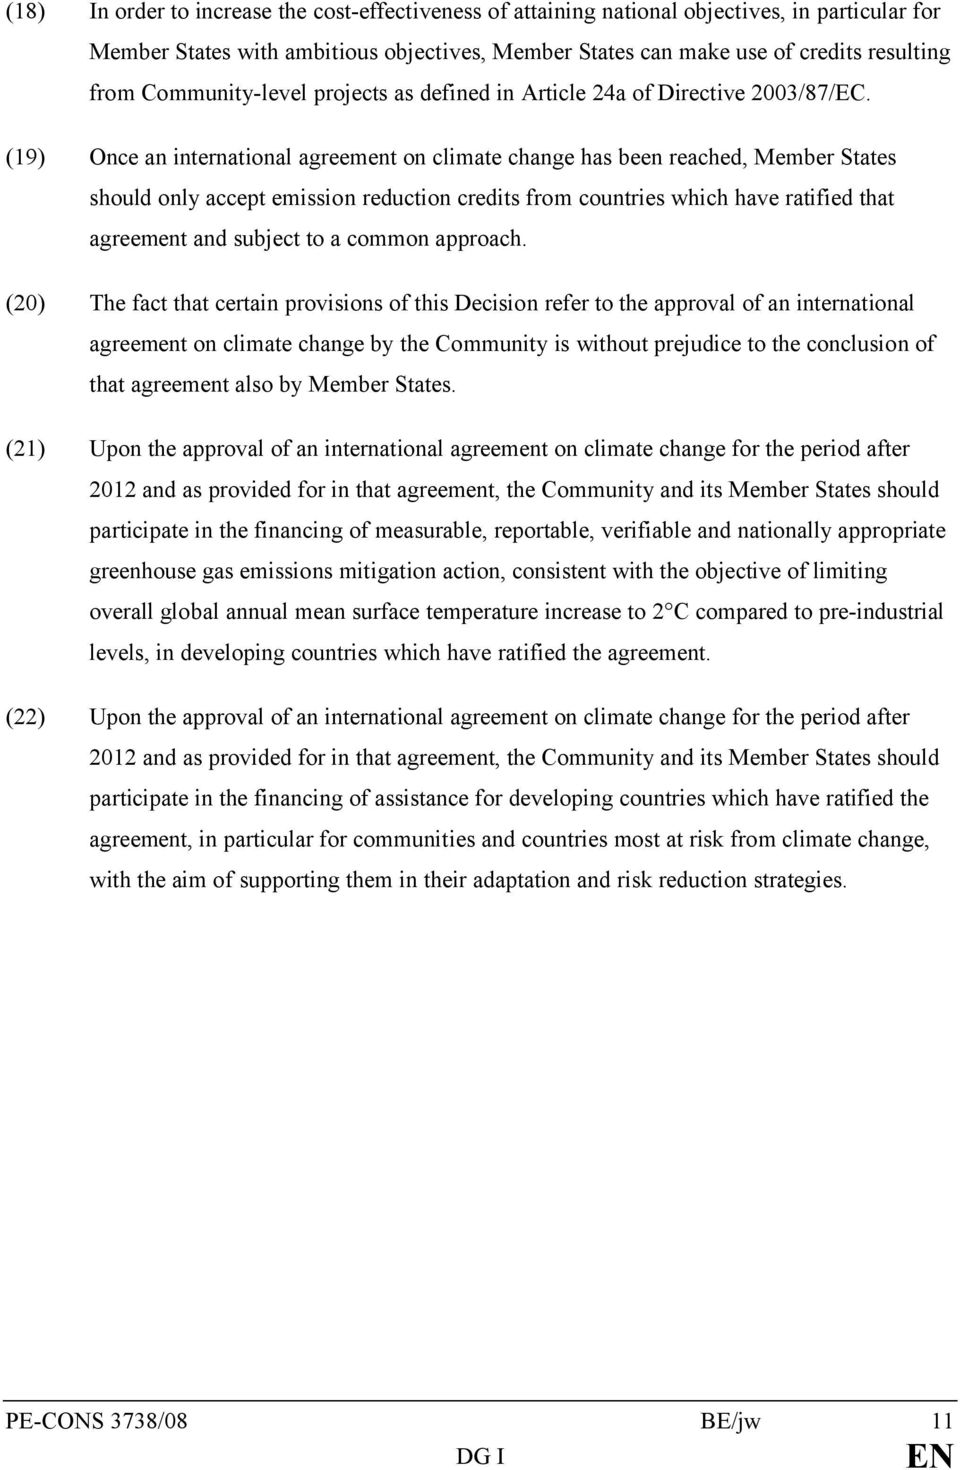 (19) Once an international agreement on climate change has been reached, Member States should only accept emission reduction credits from countries which have ratified that agreement and subject to a